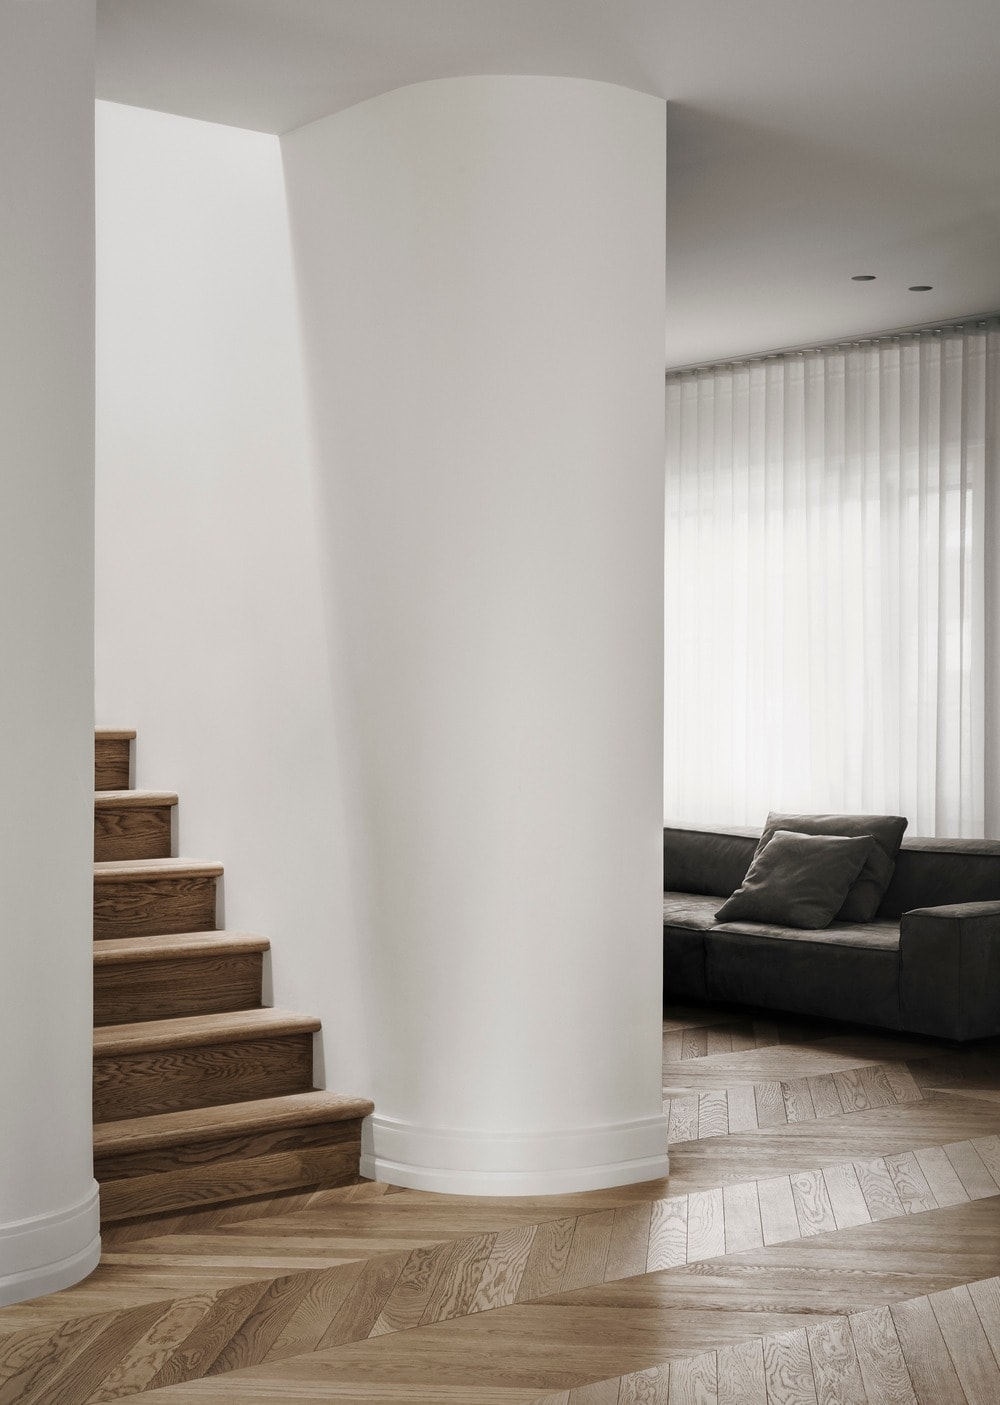 This is a look at the family room from the hall that leads to the staircase that has wooden steps to match the floor.